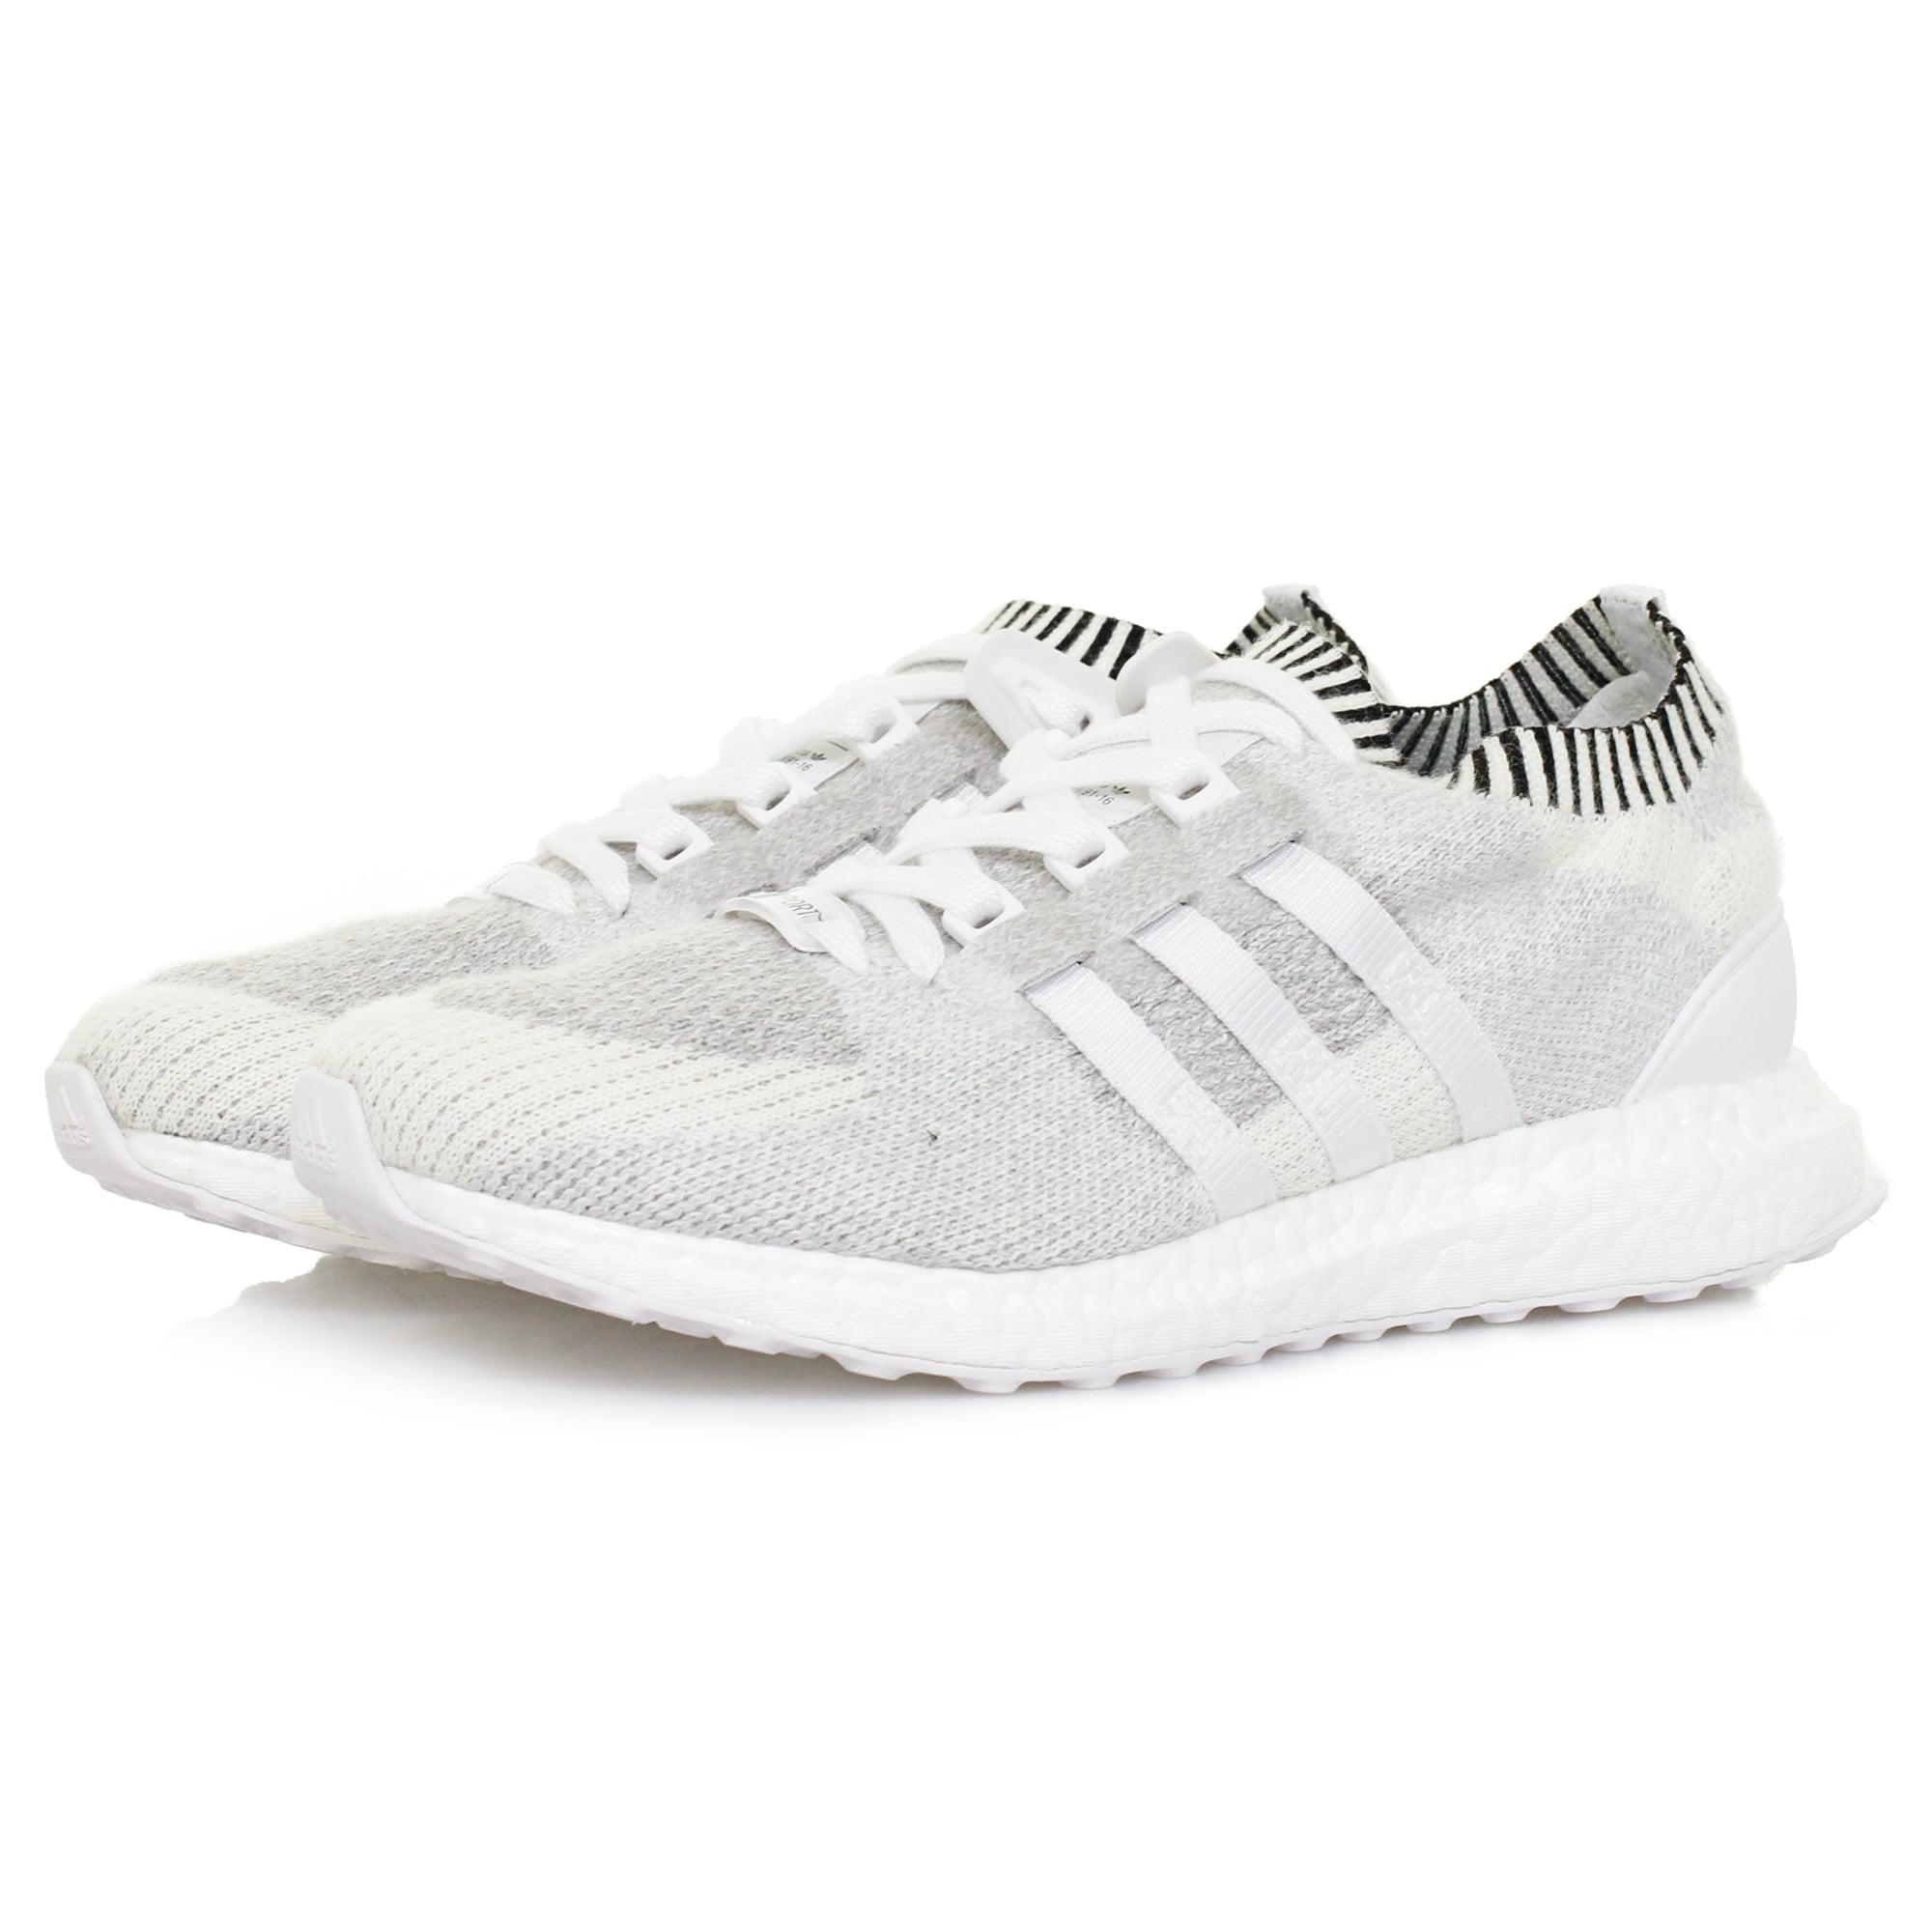 new style 556e8 92d89 Lyst - Adidas Originals Eqt Support Ultra Pk White Shoe in W